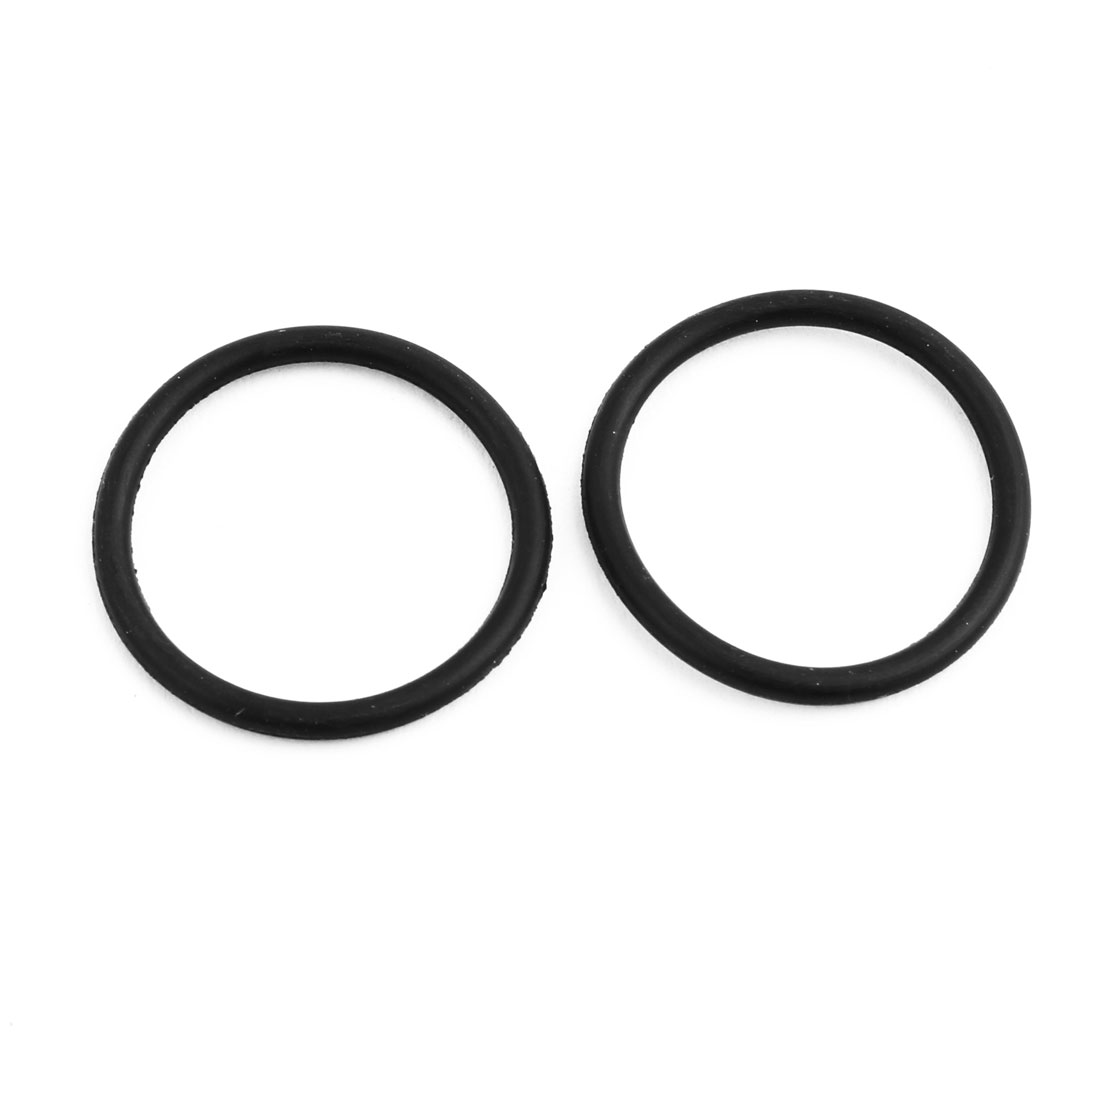 20Pcs Black 24mm Dia 2mm Thickness Nitrile Rubber O Ring NBR Sealing Grommets